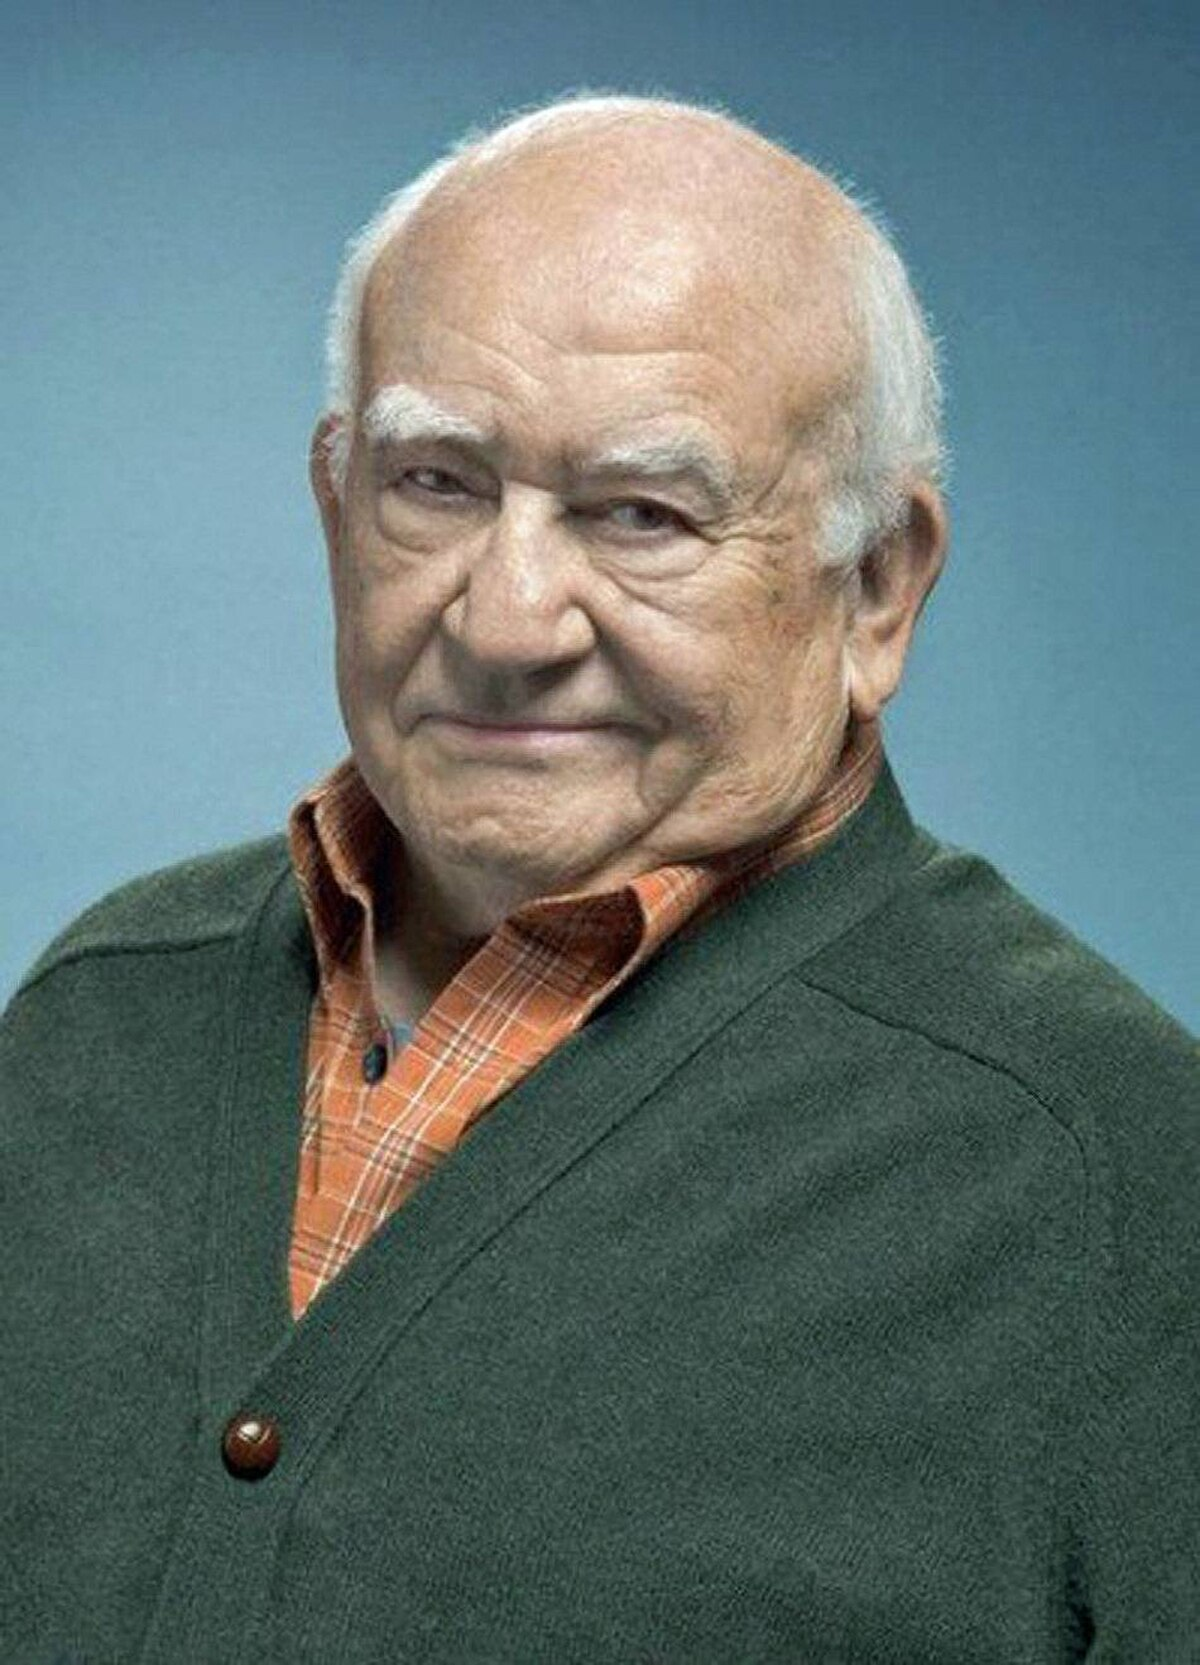 DRAMA Hawaii Five-O CBS, Global, 10 p.m. ET; 7 p.m. PT Still plugging along on Monday nights, this sophomore crime drama pays homage to the seventies series it's based on in tonight's new episode. The show features a guest appearance by Ed Asner reprising his role of August March, a diamond smuggler he played in a 1975 episode of the original series. Still crusty and very cranky, the character reemerges from hiding to help out McGarrett (Alex O'Loughlin) whose sister has been falsely accused of smuggling $20-million in diamonds. Footage from the original episode will be featured in tonight's show, which is pretty cool.